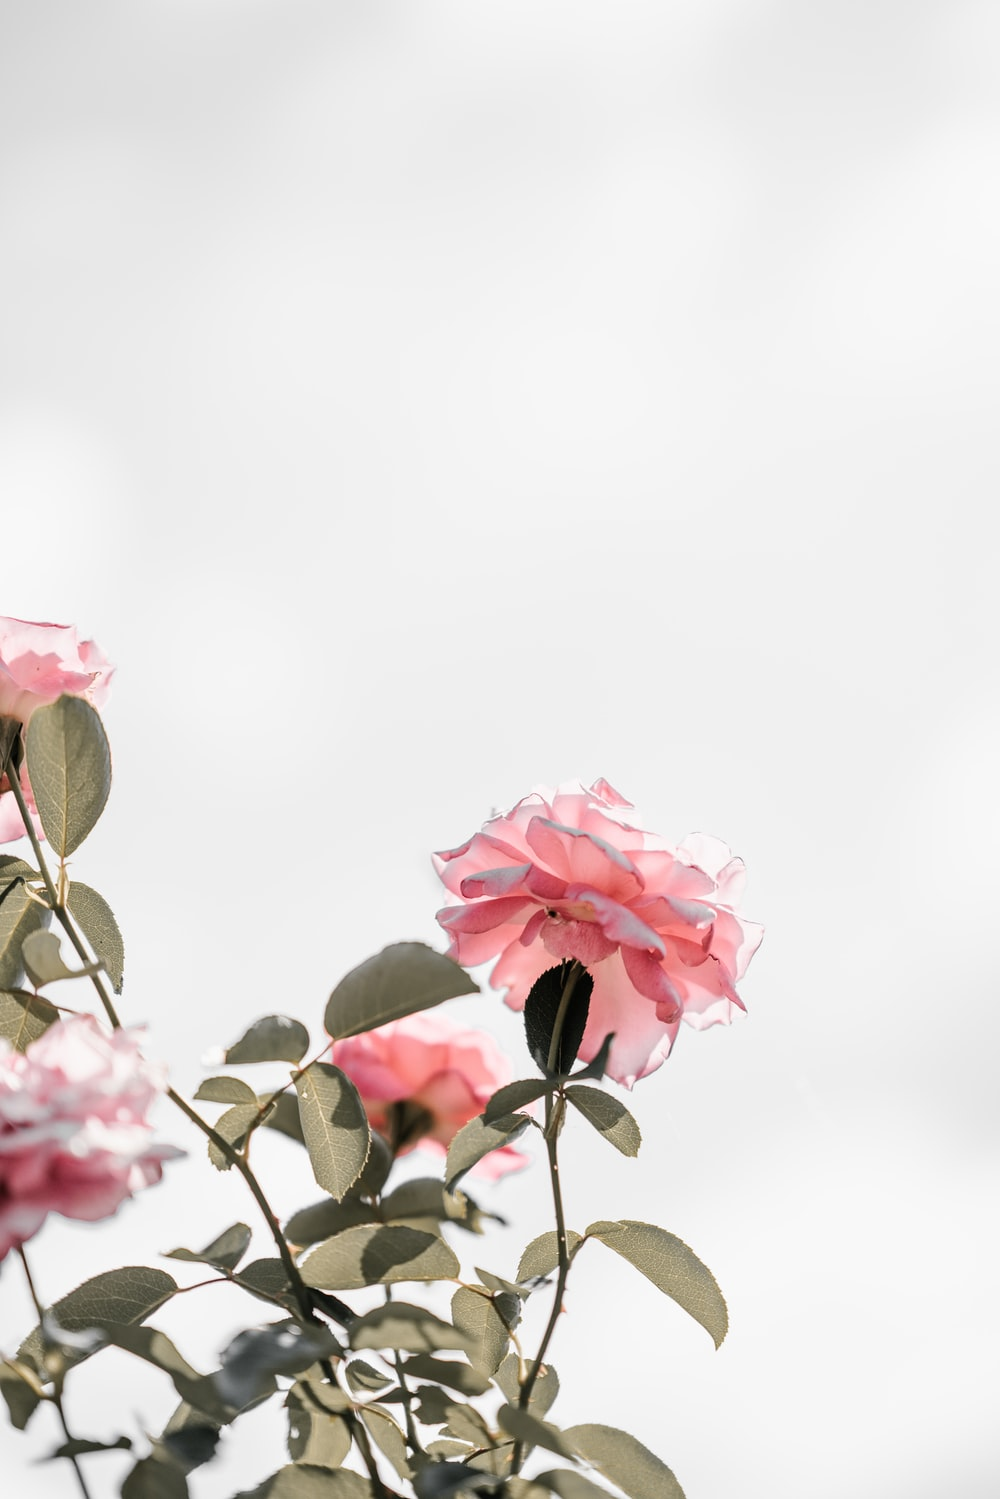 Pink Flowers Pictures Hd Download Free Images On Unsplash